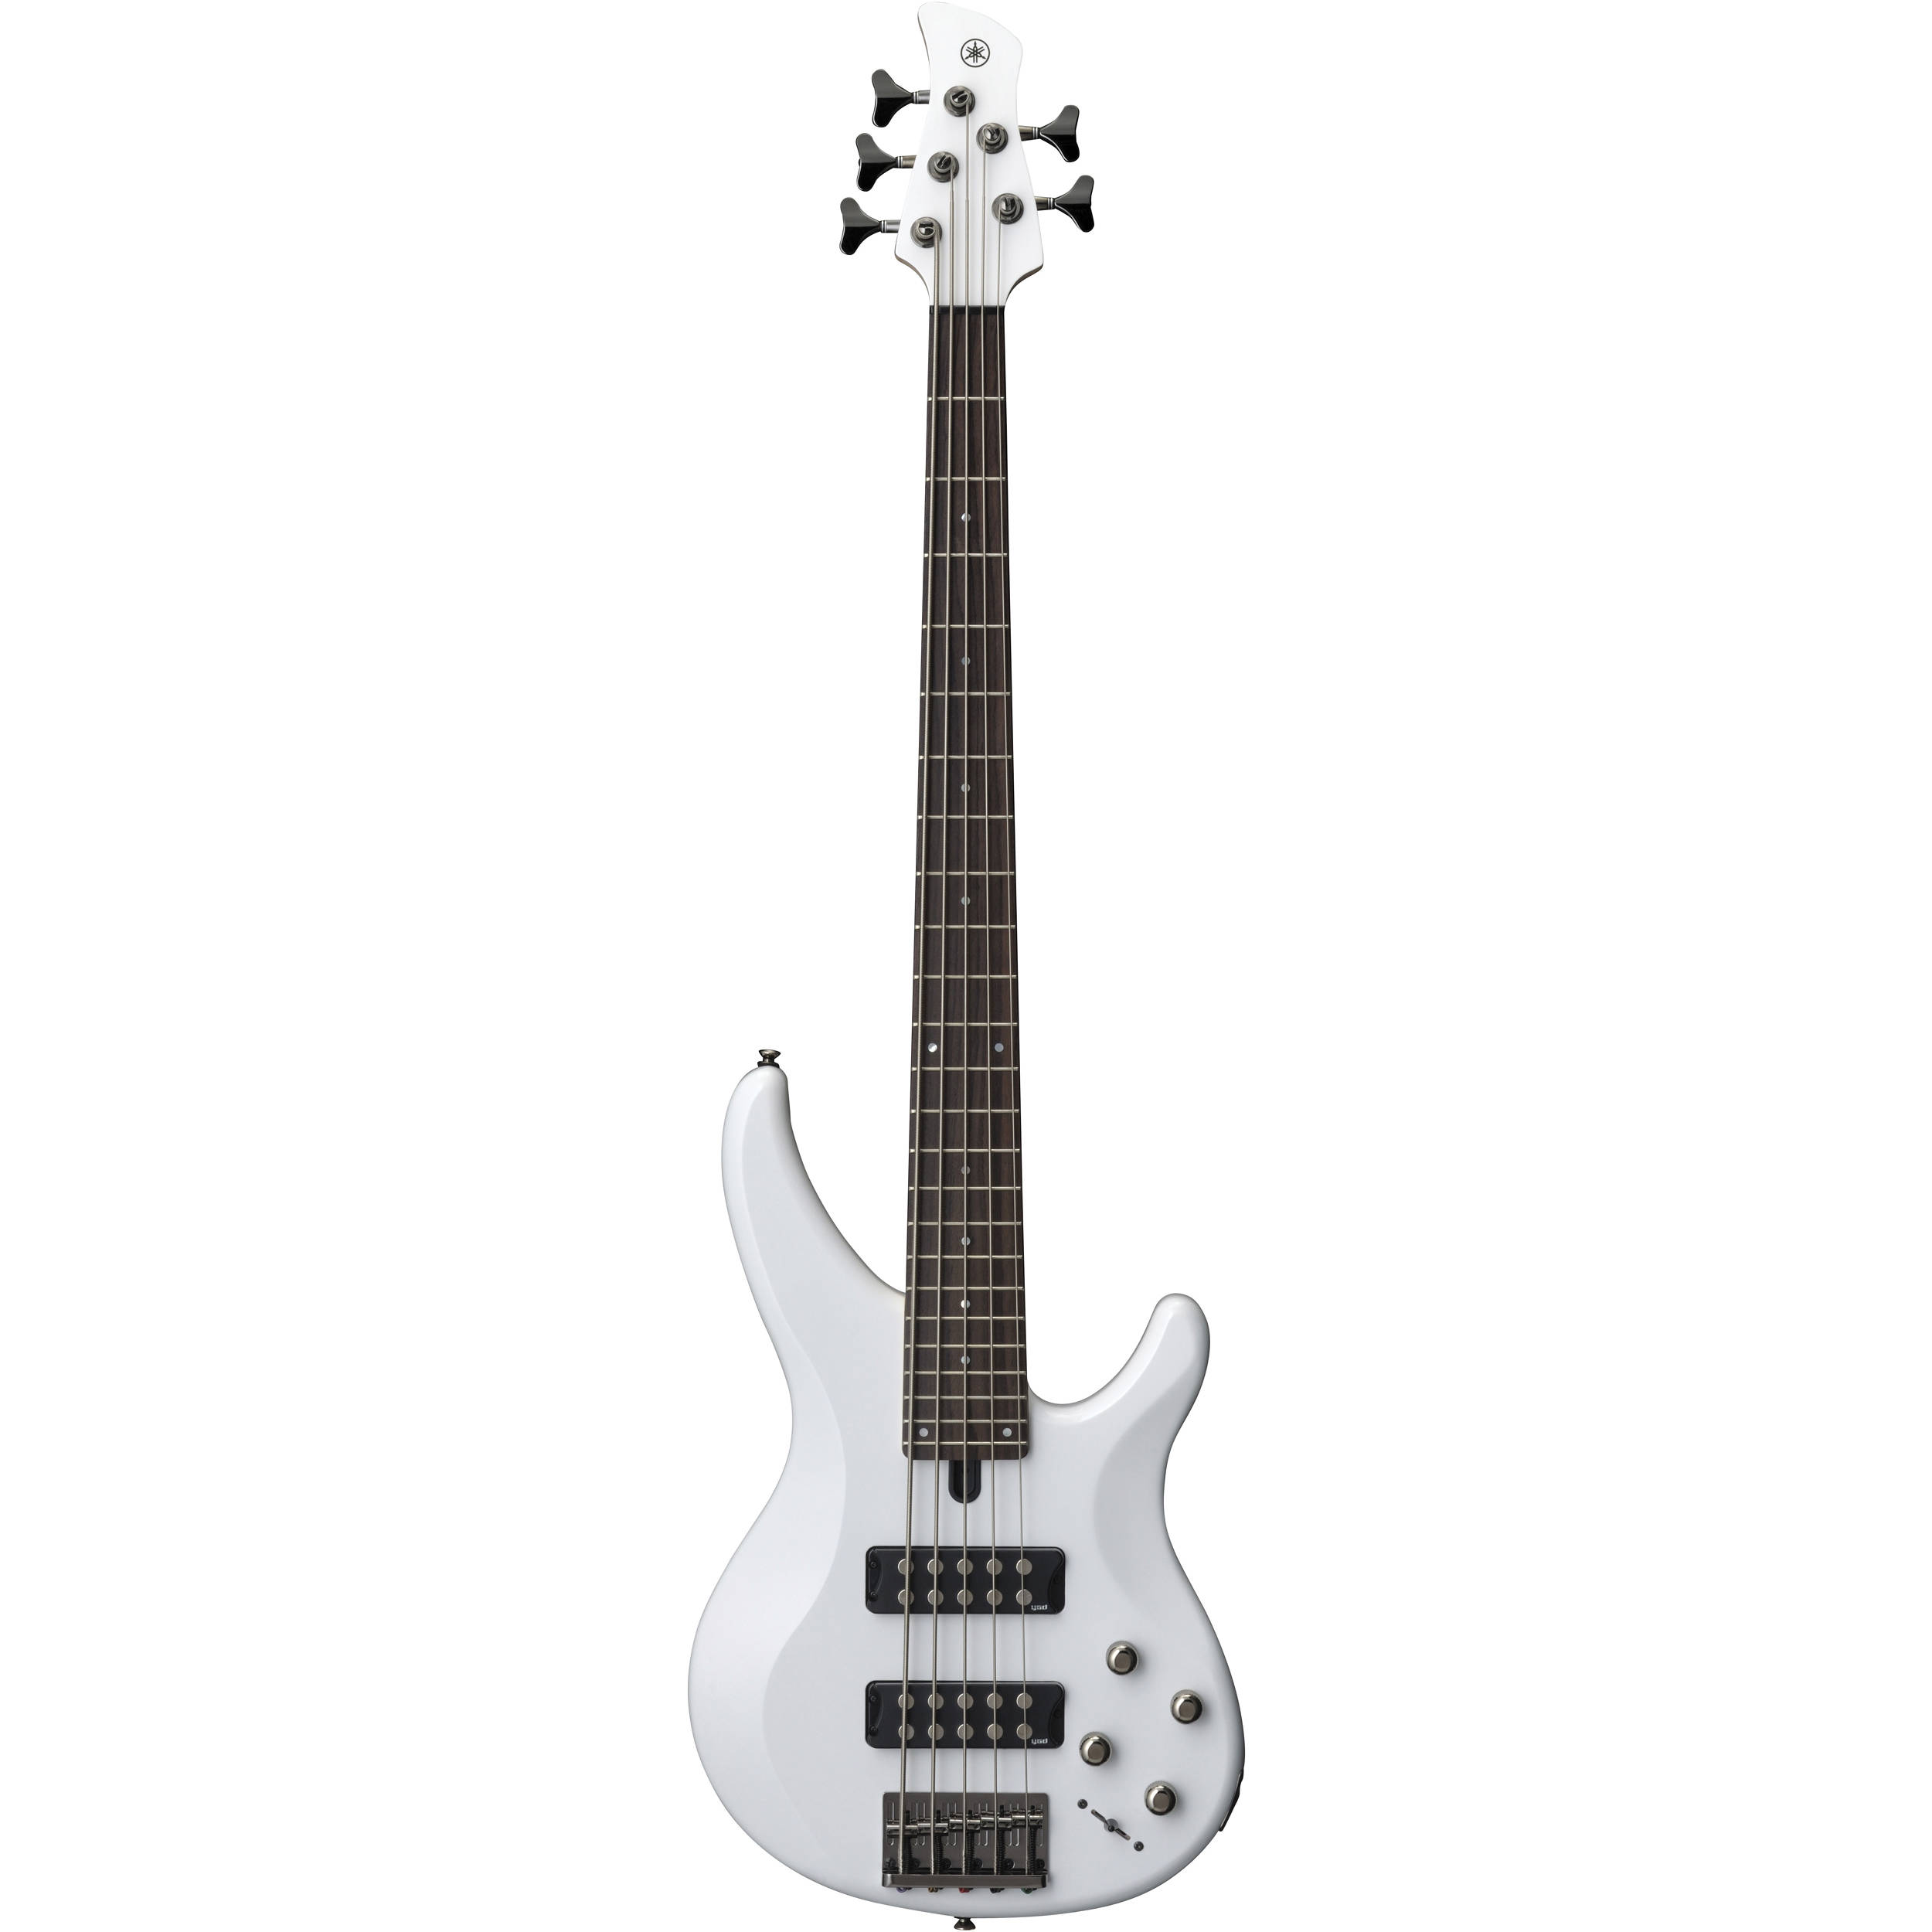 yamaha trbx305 5 string electric bass white trbx305 wh b h photo. Black Bedroom Furniture Sets. Home Design Ideas